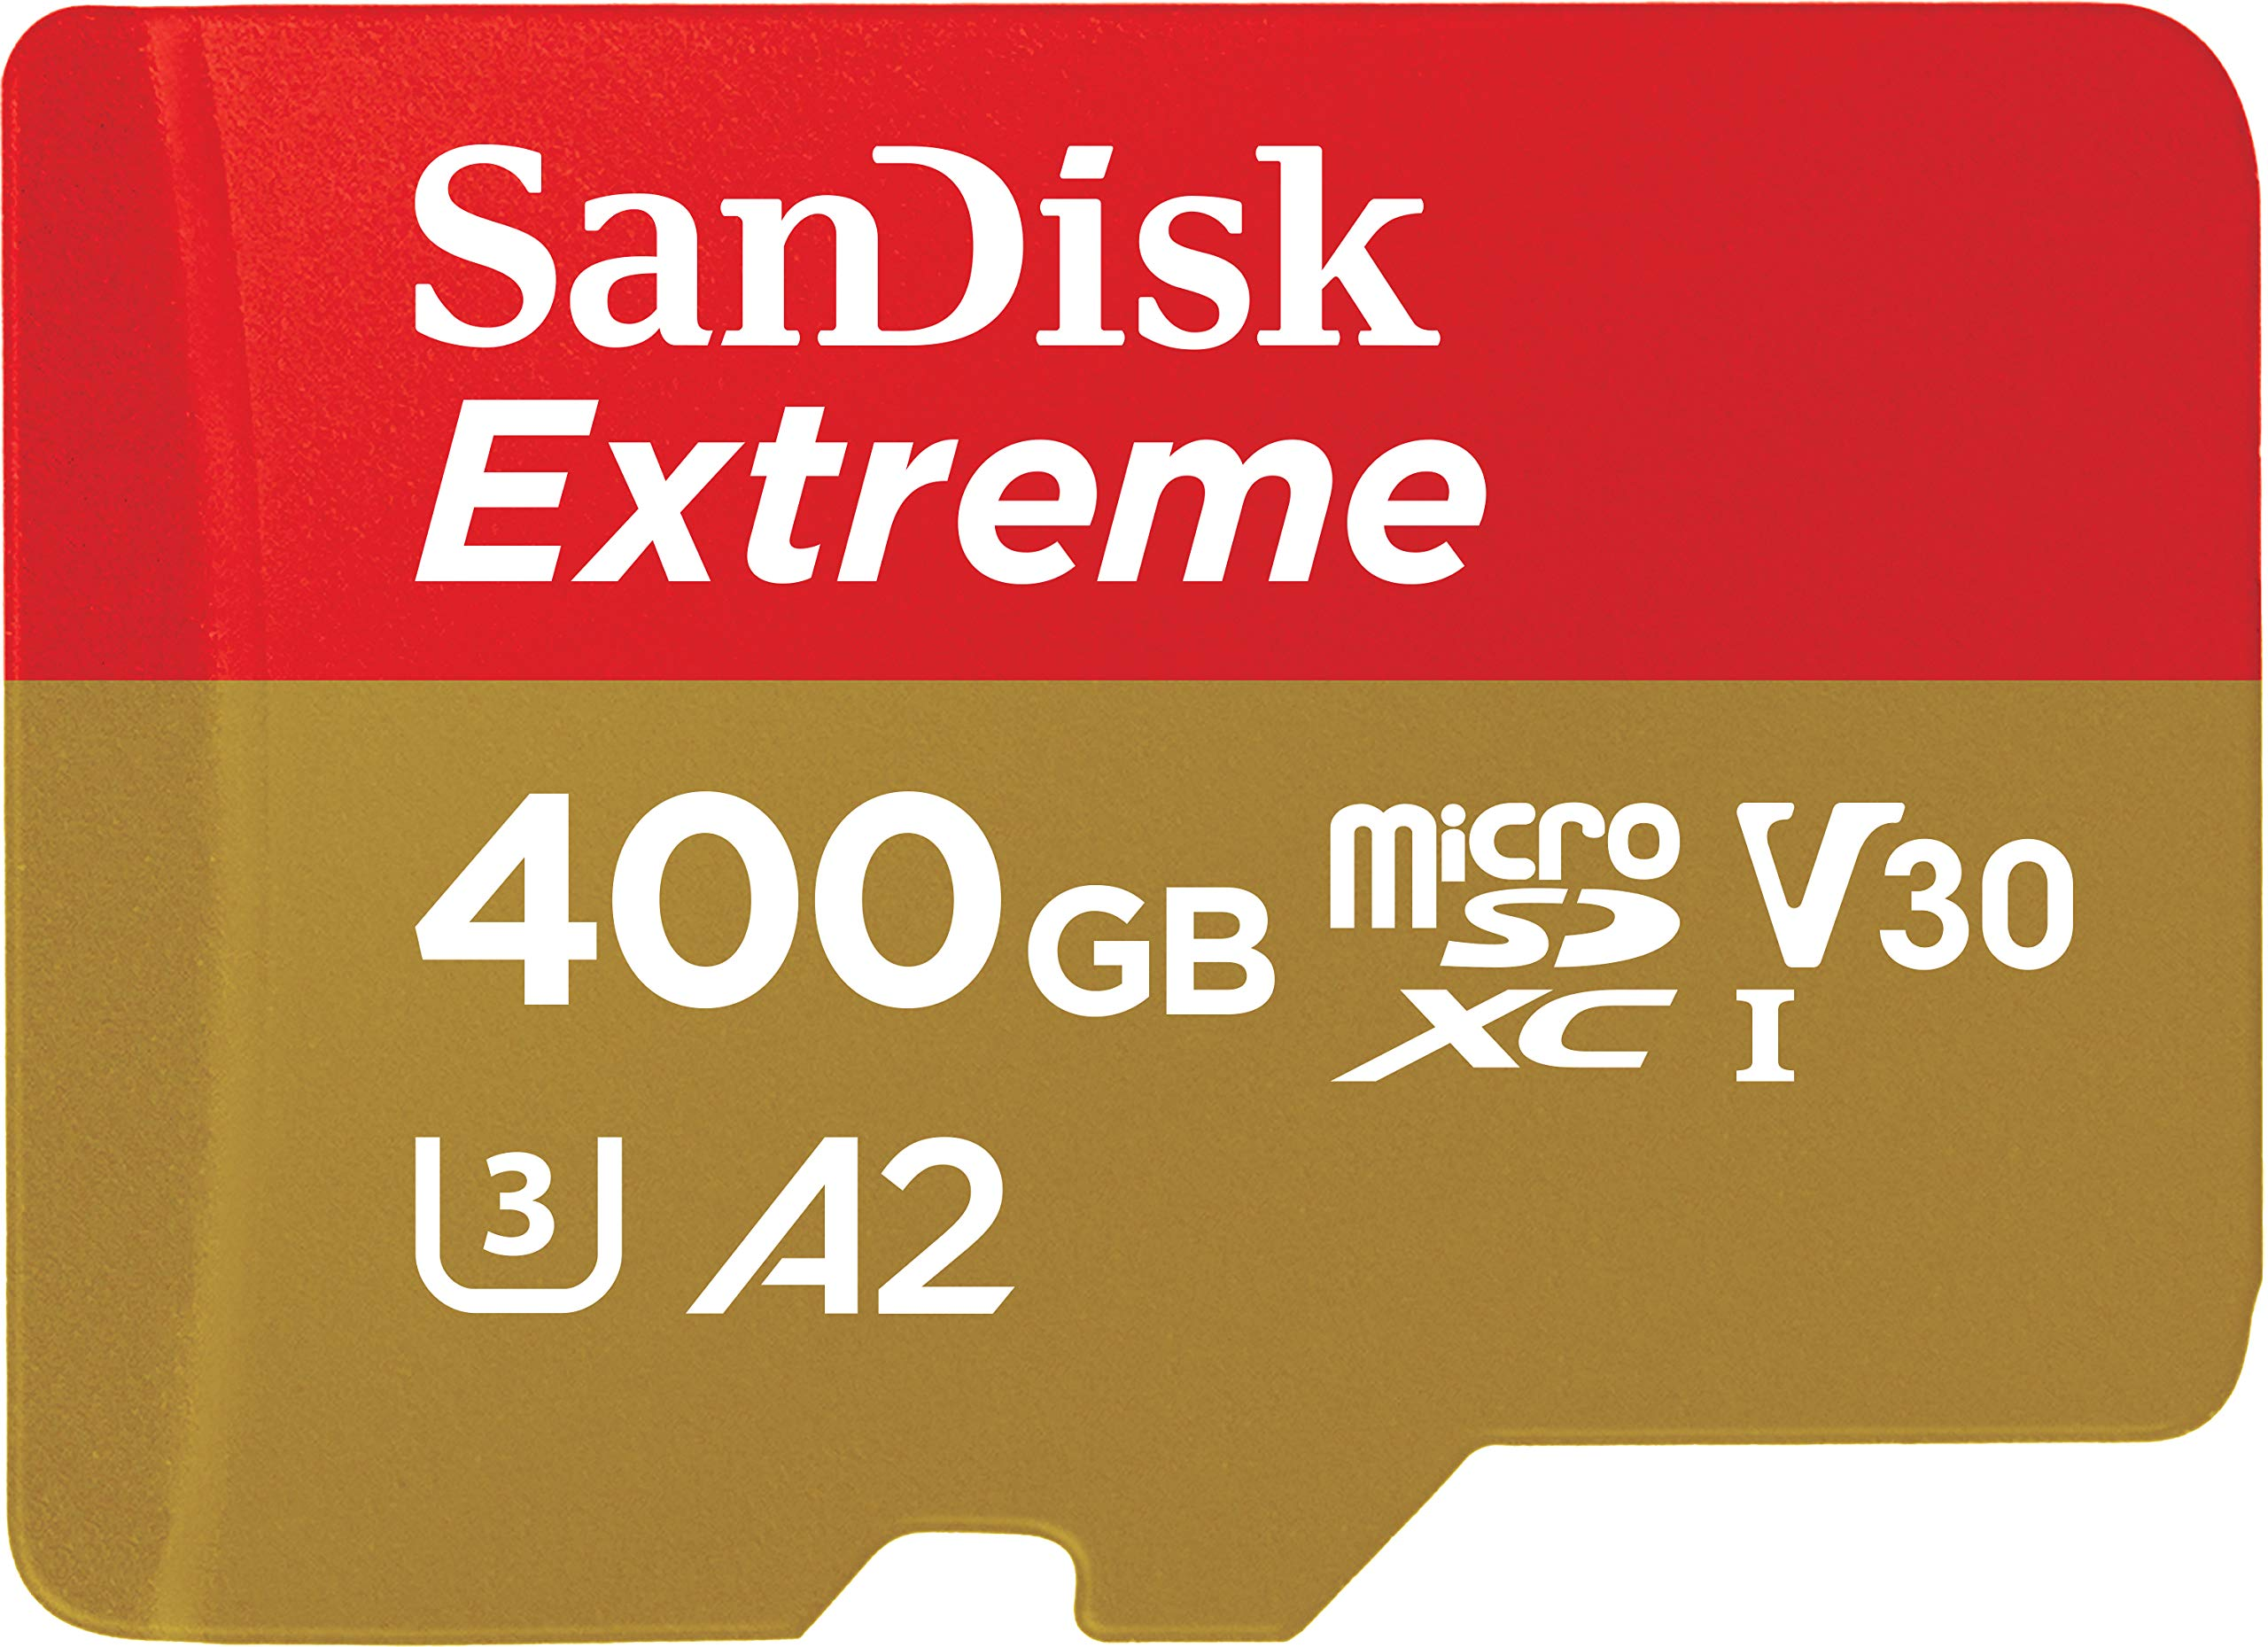 SanDisk 400GB Extreme microSDXC UHS-I Memory Card with Adapter - C10, U3, V30, 4K, A2, Micro SD - SDSQXA1-400G-GN6MA by SanDisk